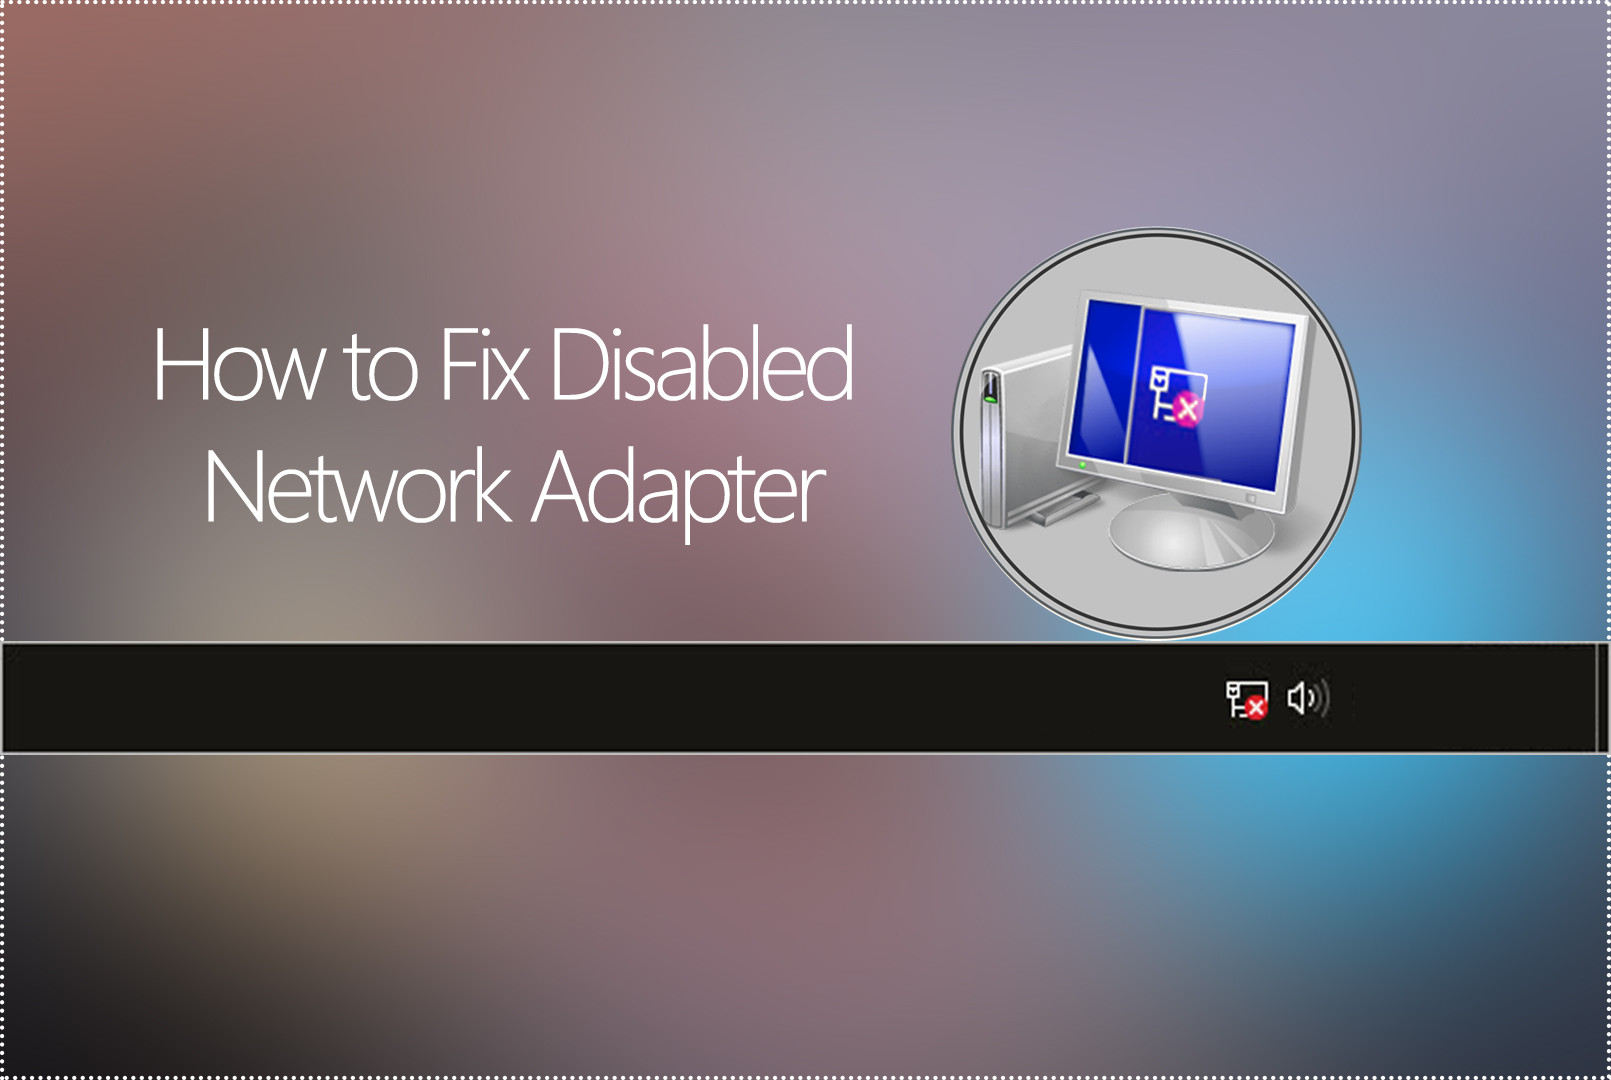 How to Fix Disabled Network Adapter in Windows 10 Desktop